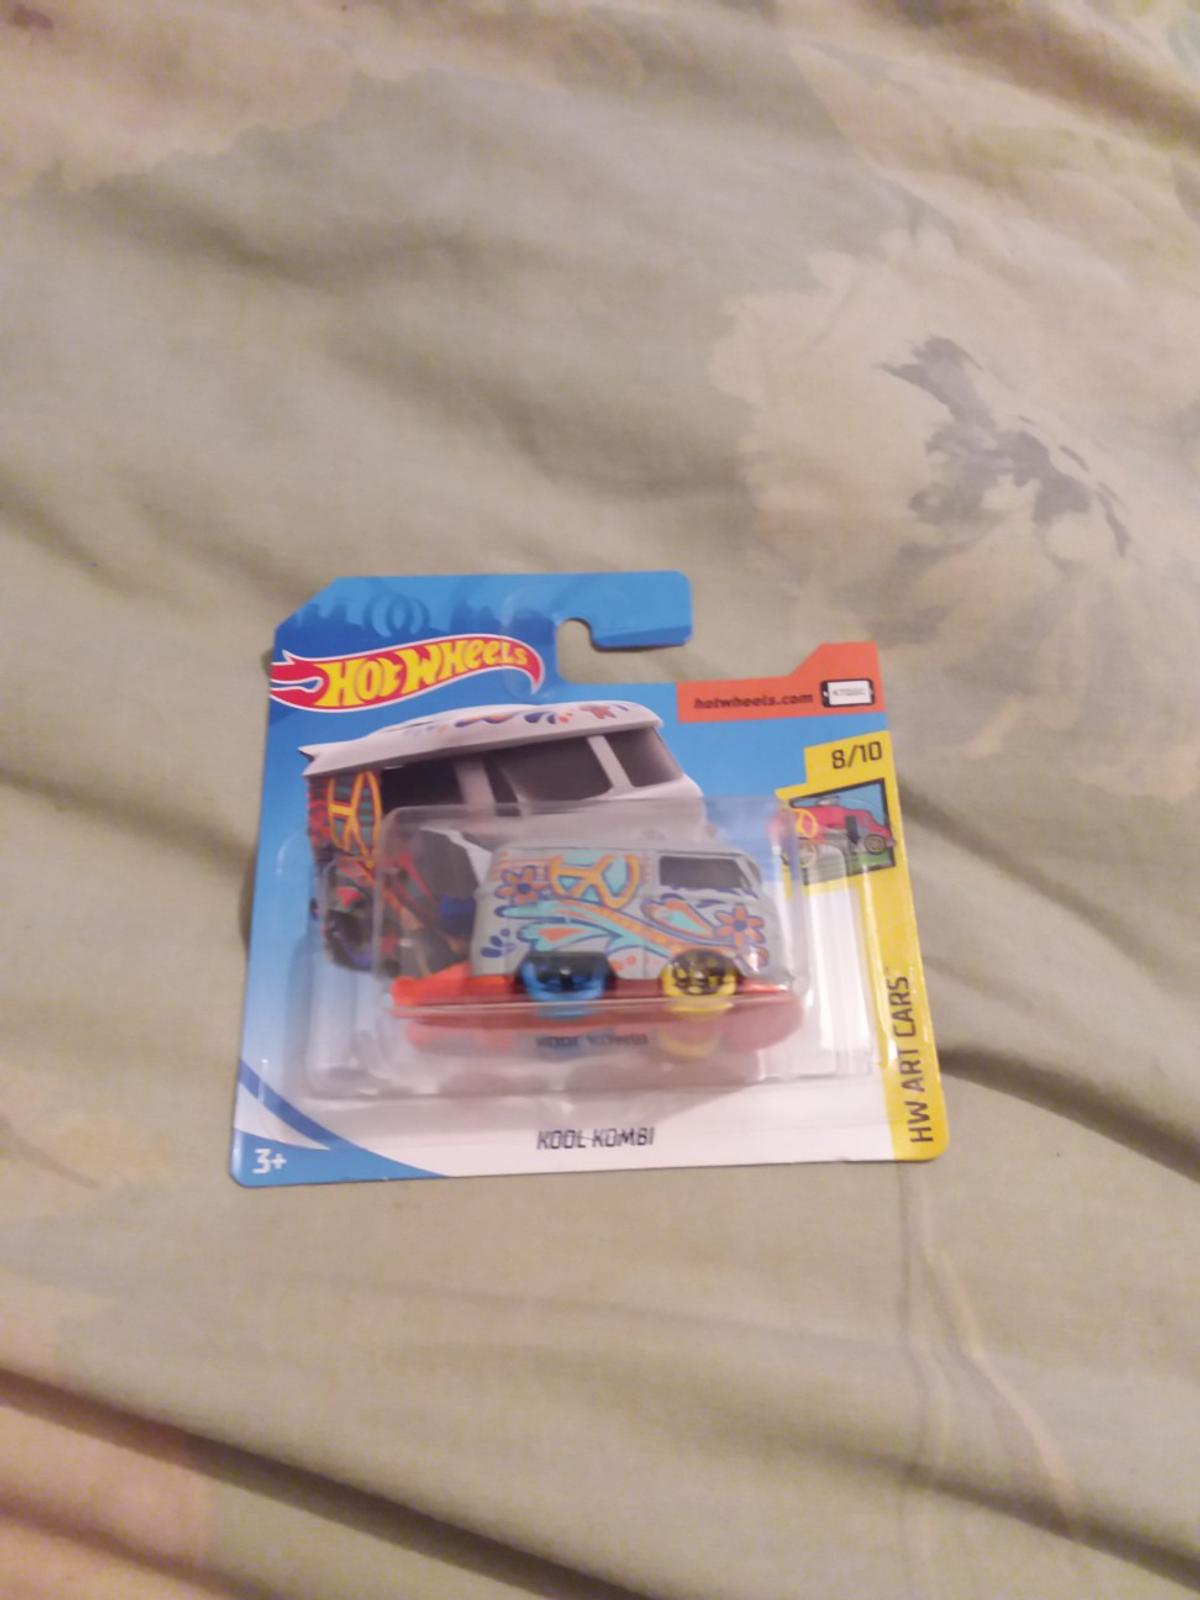 selling one hotswheels kool kombi much pick up cash on collection or can posted it frist class signed for £4